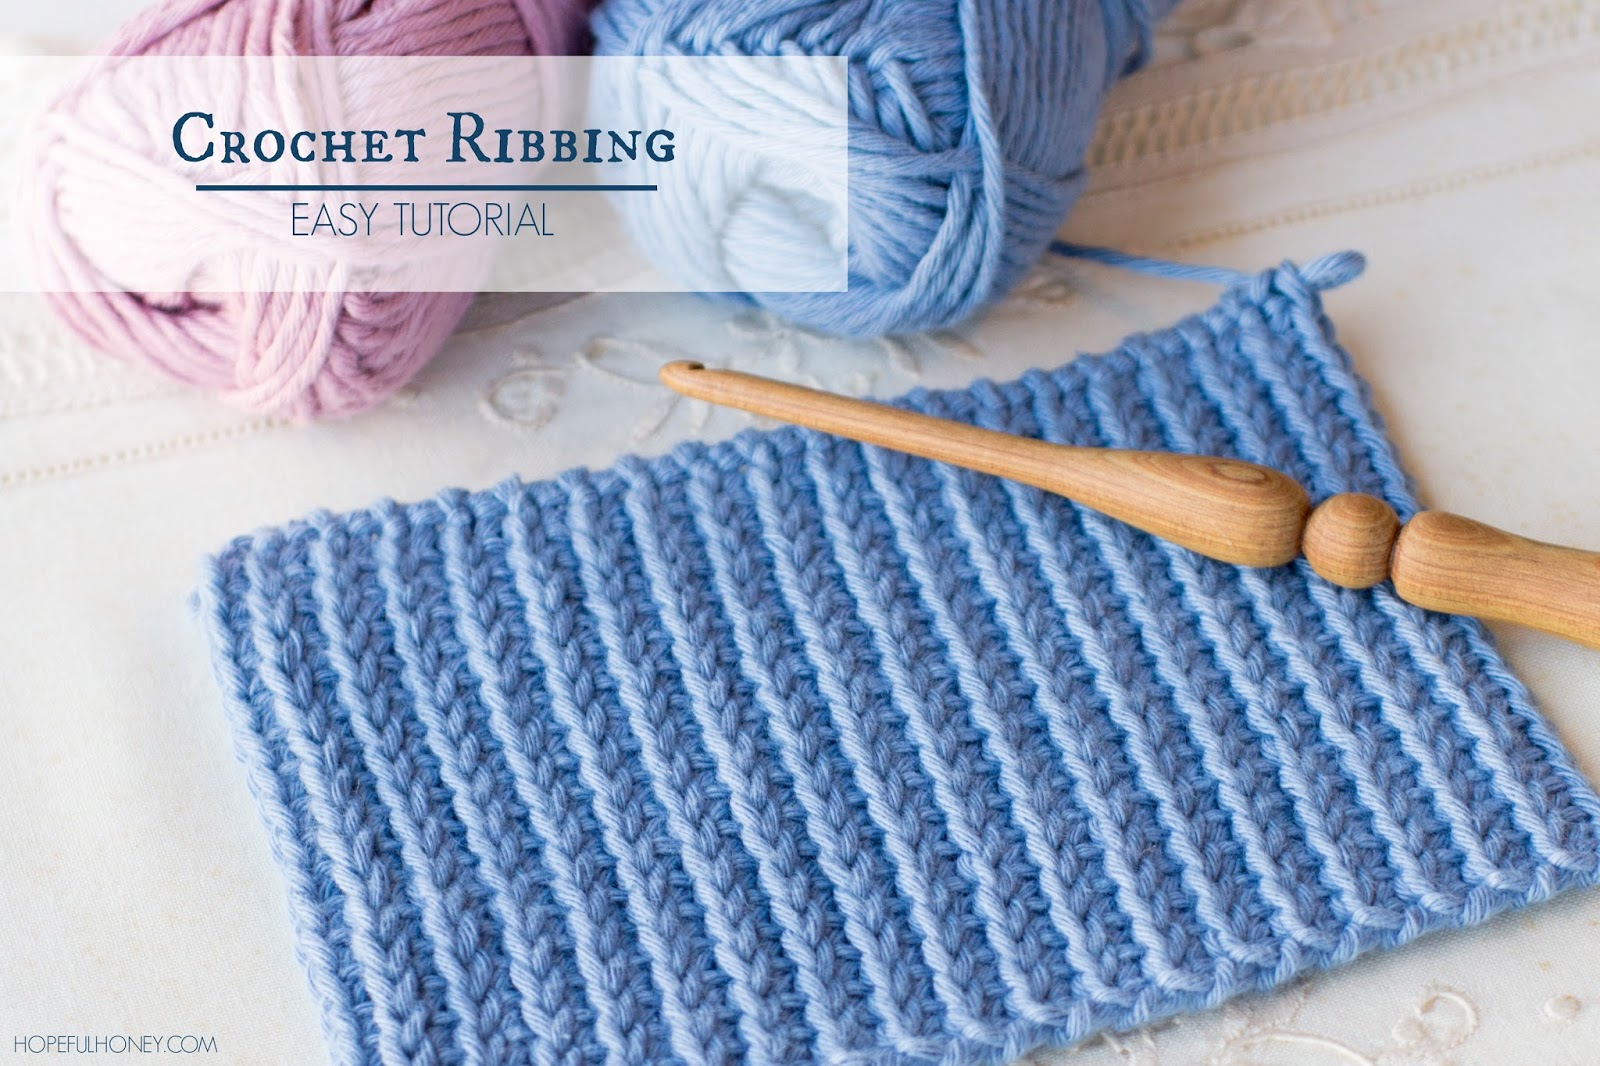 Crocheting Ribbing : crocheting ribbing is a great technique for any crocheter to learn as ...